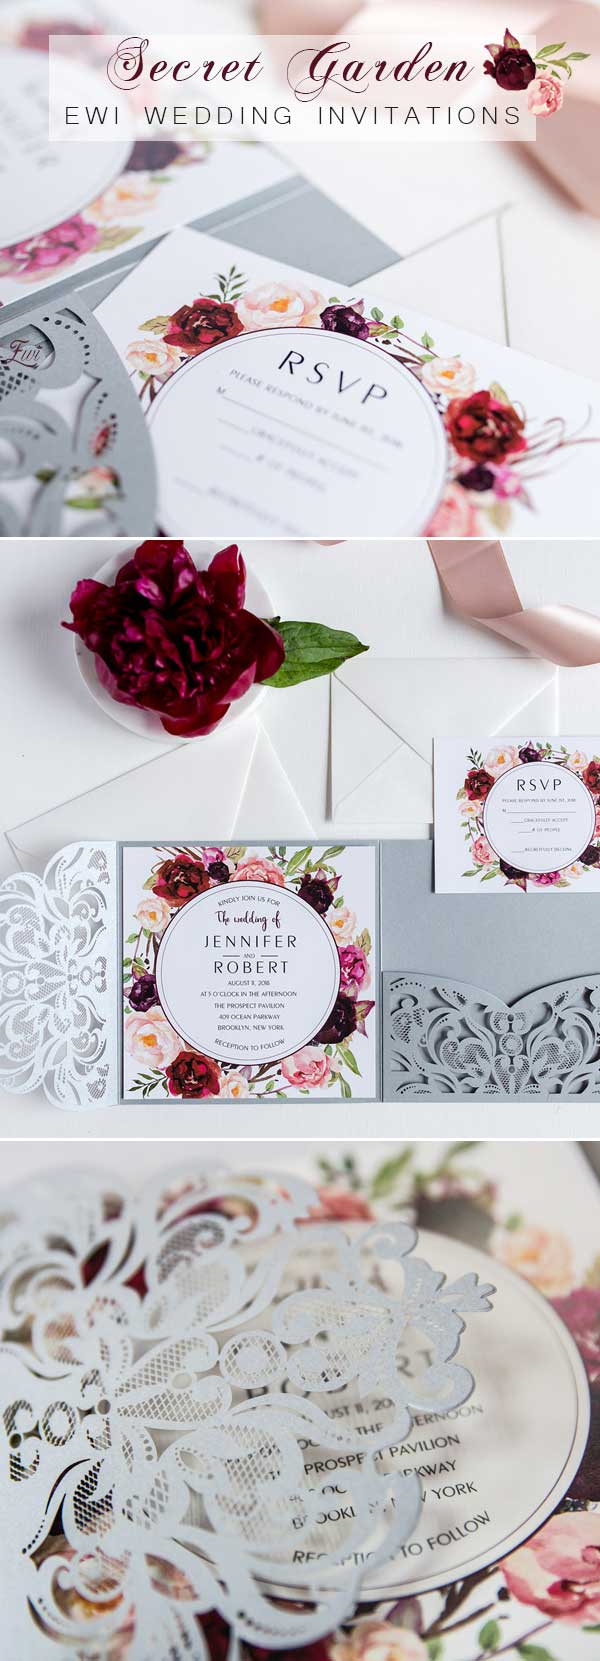 Garden Wedding Invitations Top 8 Garden Themed Wedding Invitation Cards At